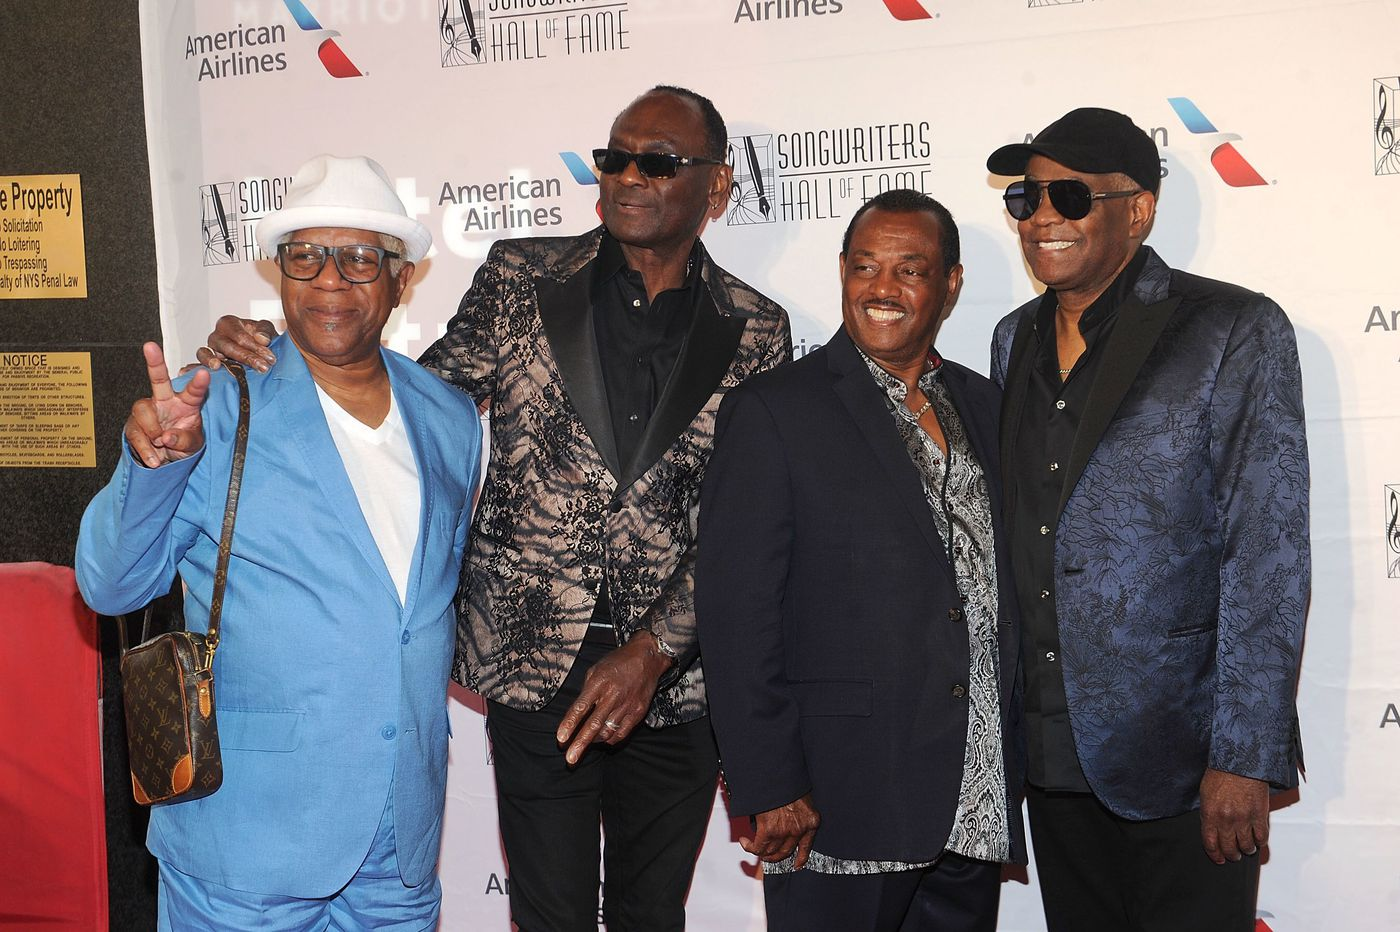 Kool & the Gang to receive 2019 Marian Anderson Award on group's 50th anniversary